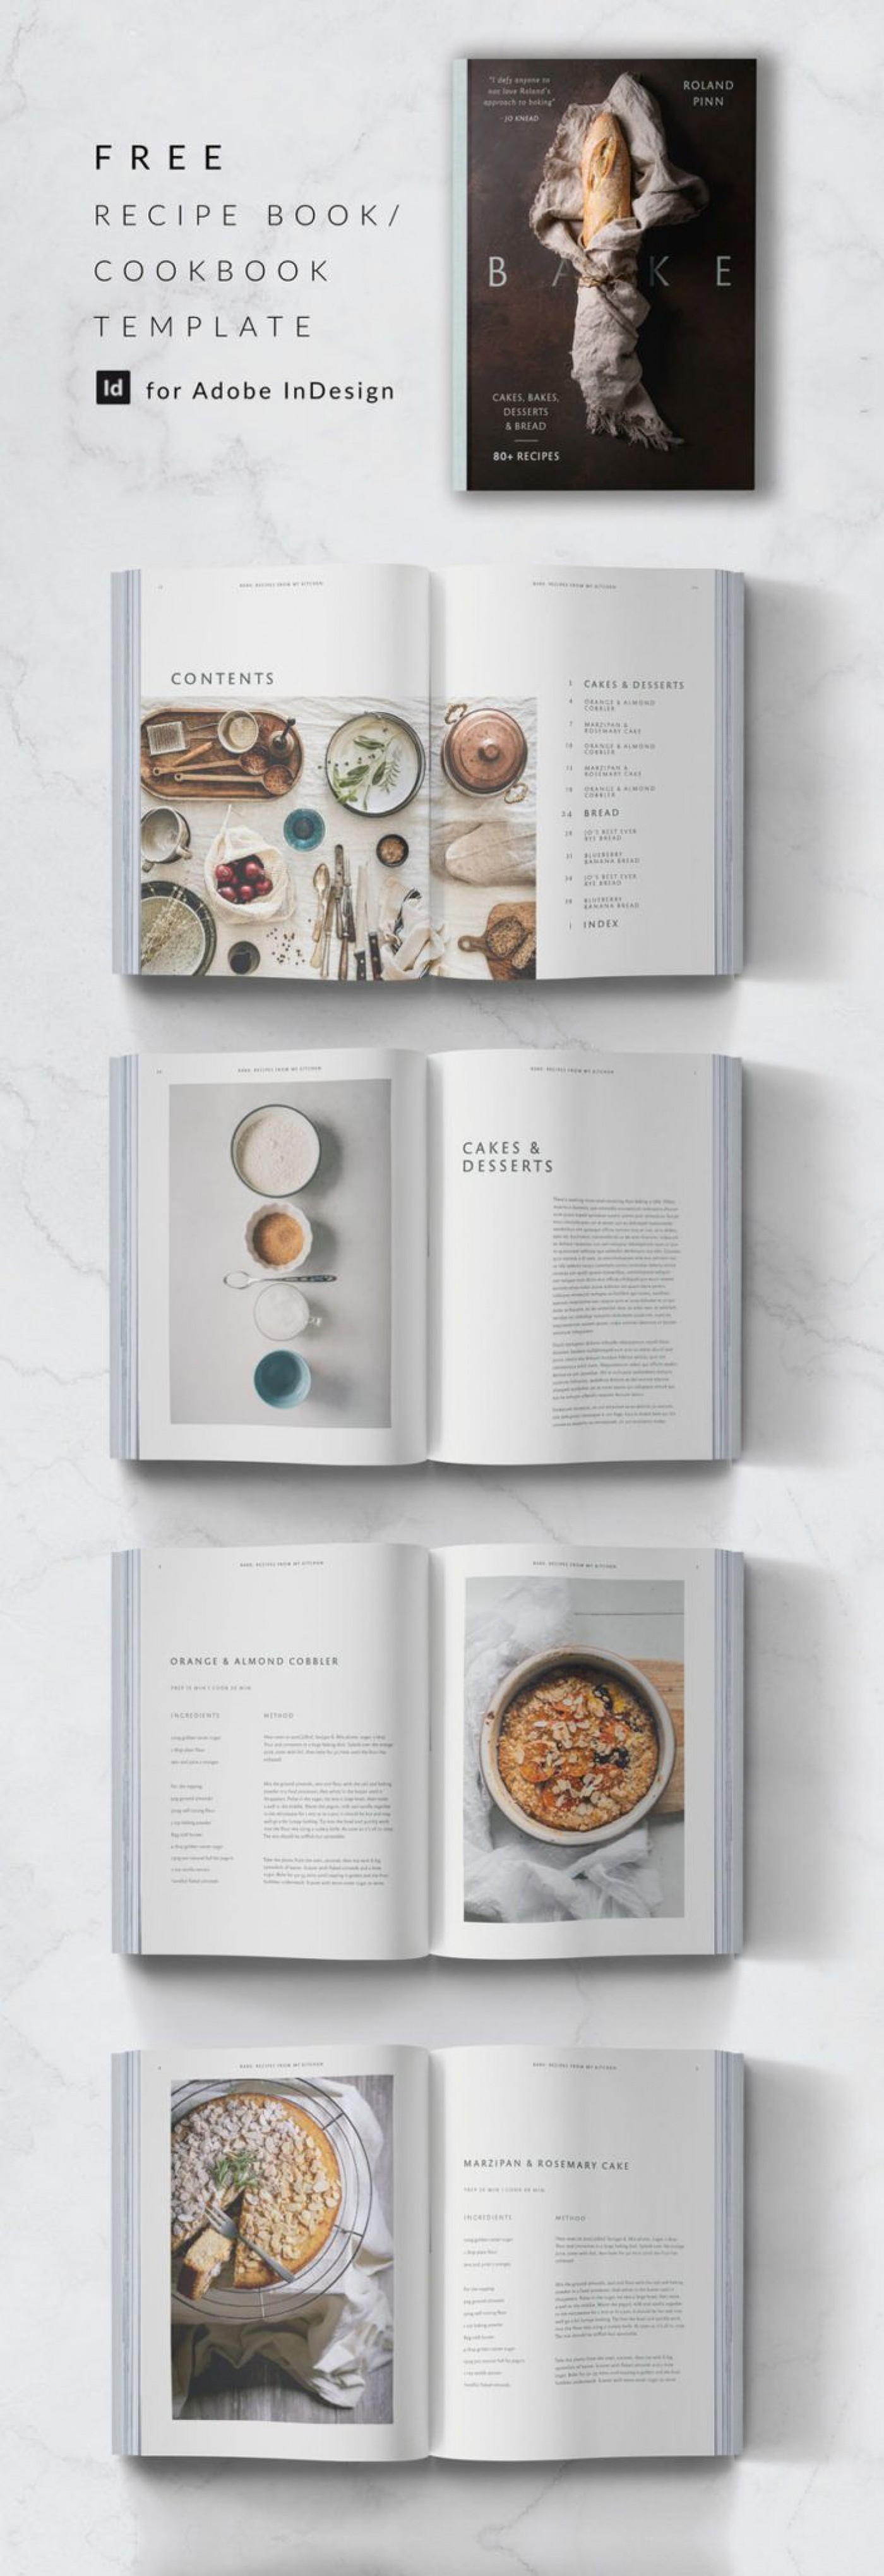 011 Remarkable Create Your Own Cookbook Free Template Sample 1400